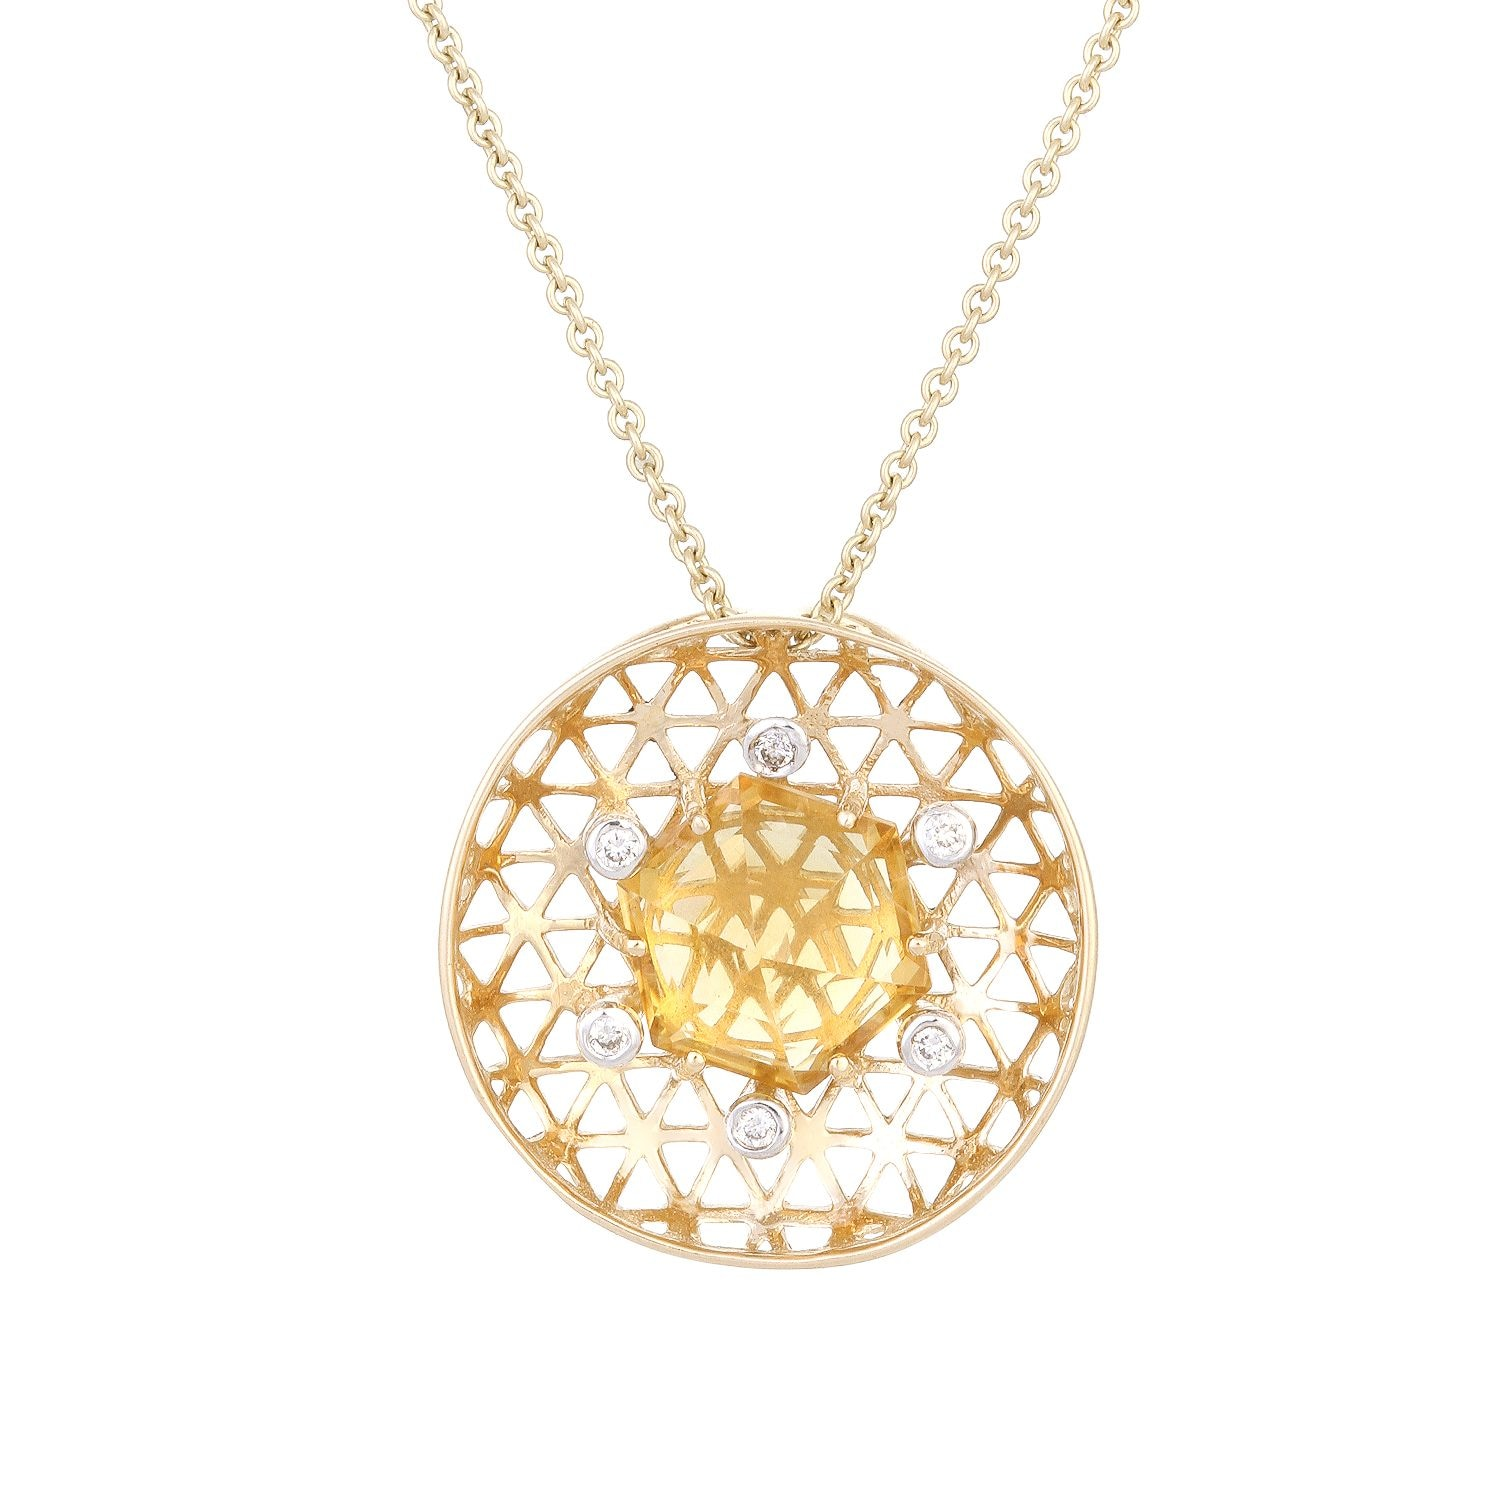 Buy circular gold and diamond tanishq pendant 552811pncaaa52 for buy circular gold and diamond tanishq pendant 552811pncaaa52 for women at best price online india titan aloadofball Choice Image